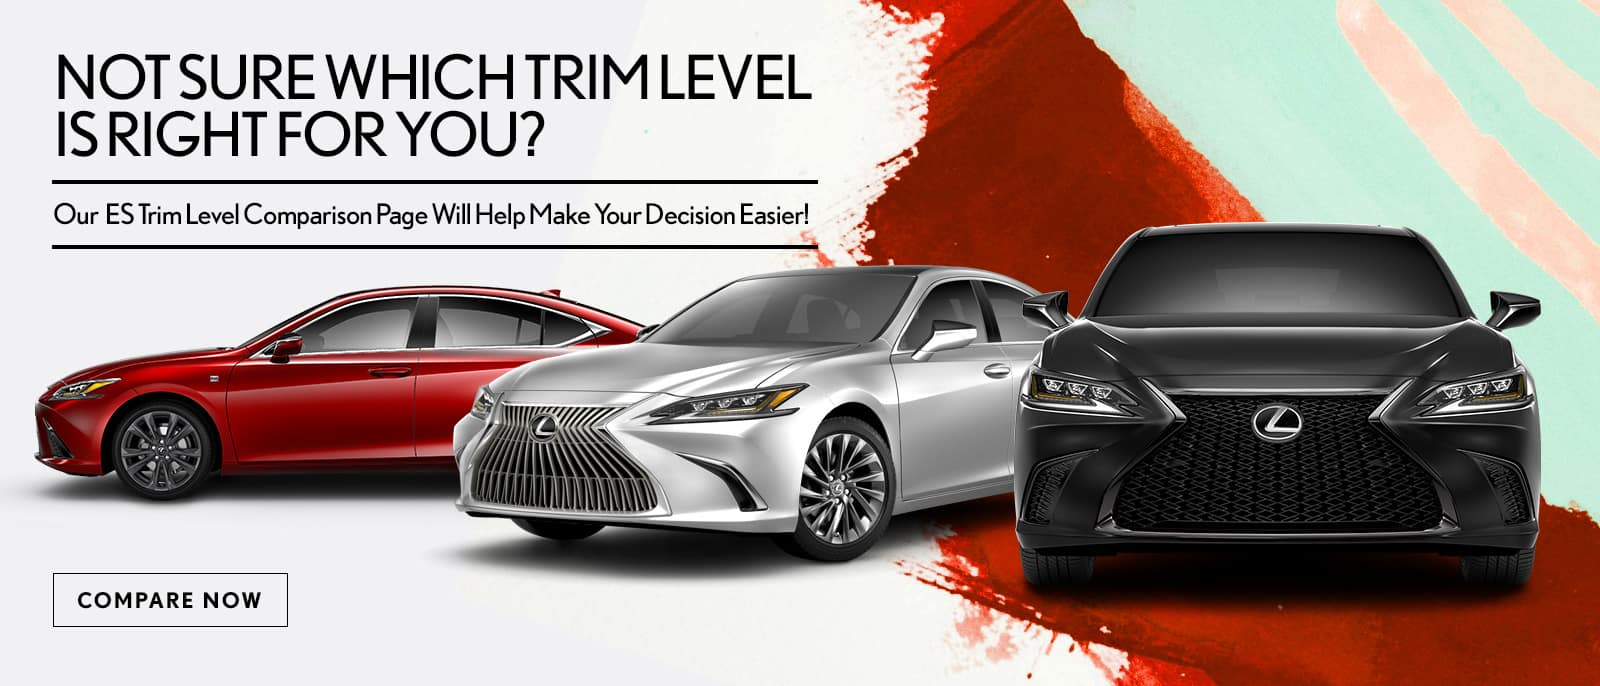 Find Out Which New Lexus ES Is Right For You Now!